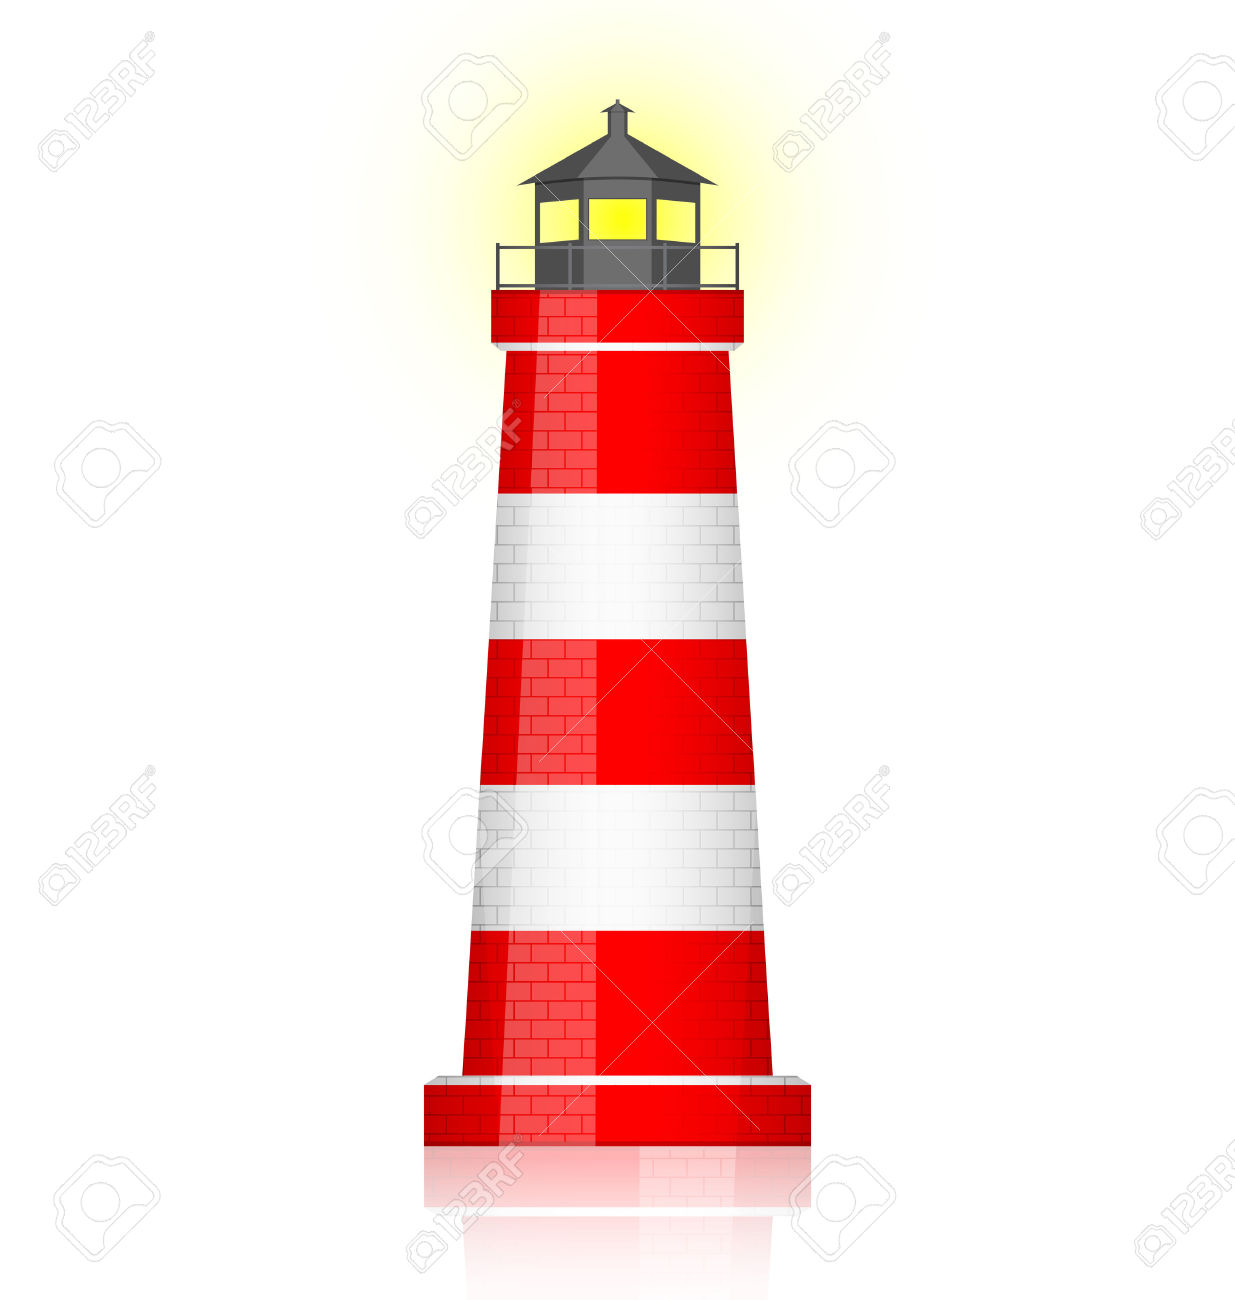 Live lighthouse clipart - Lighthouse Clipart